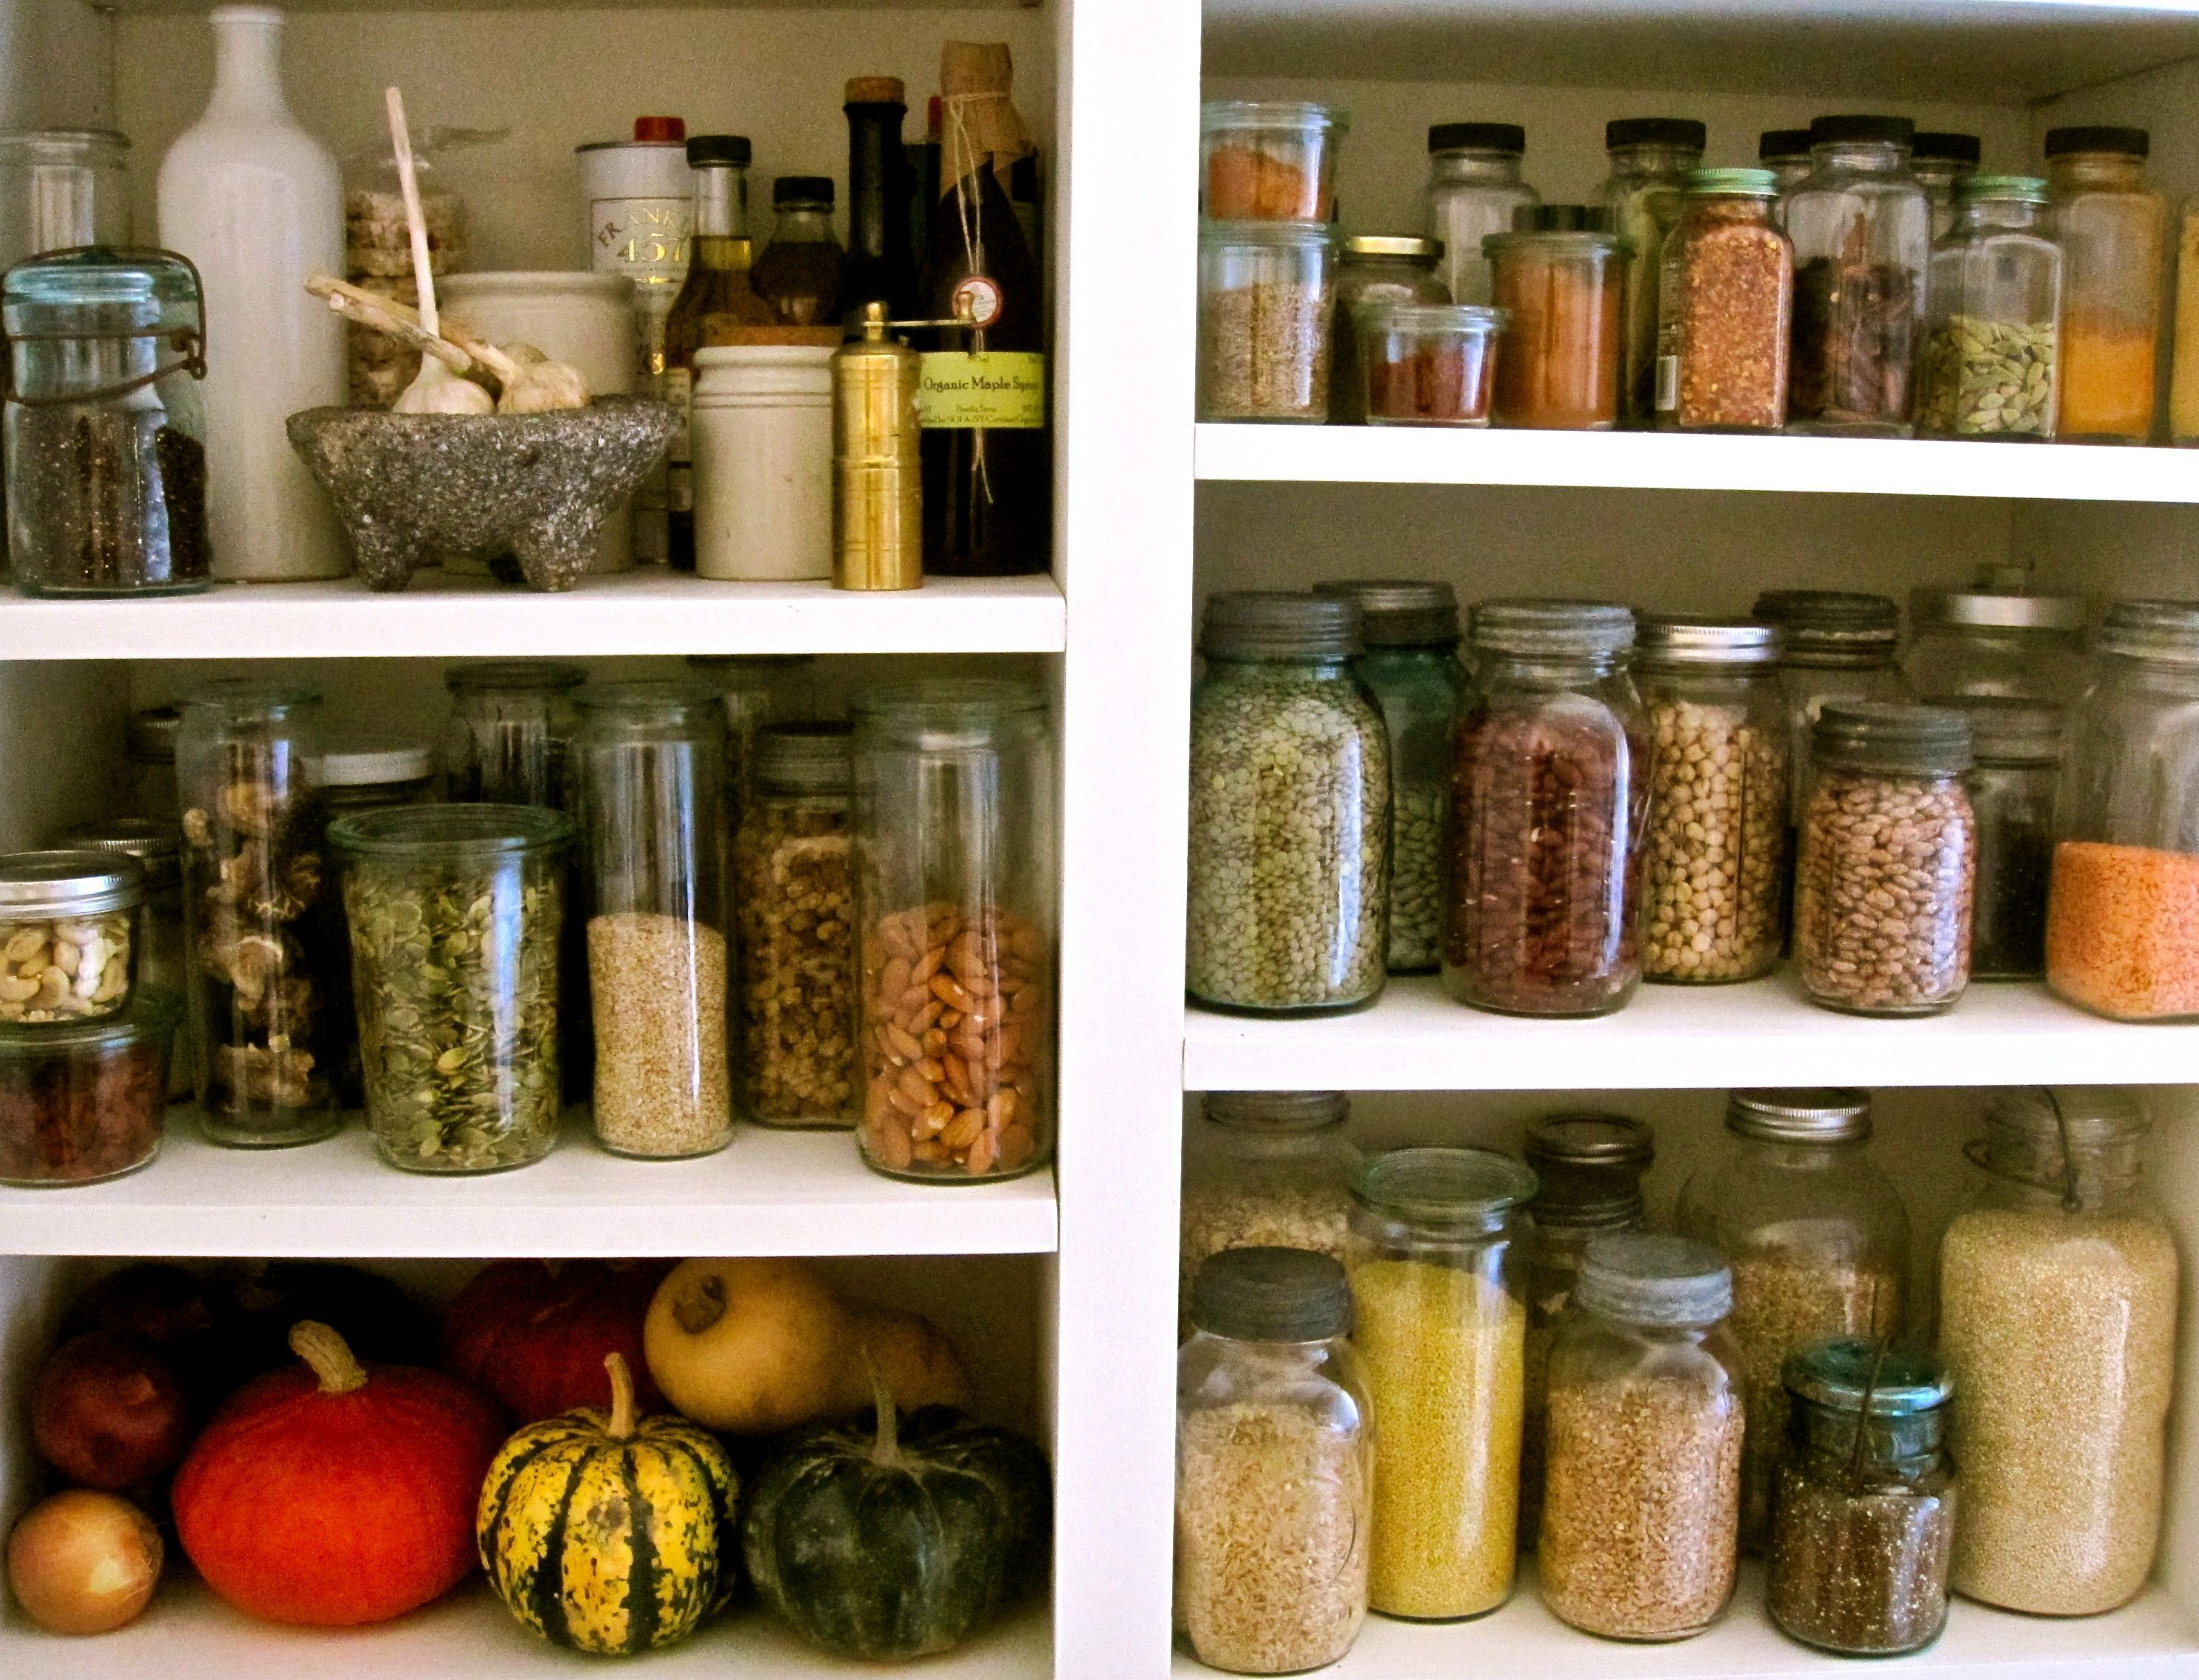 Seven Affordable, NutrientDense Foods to Stockpile For